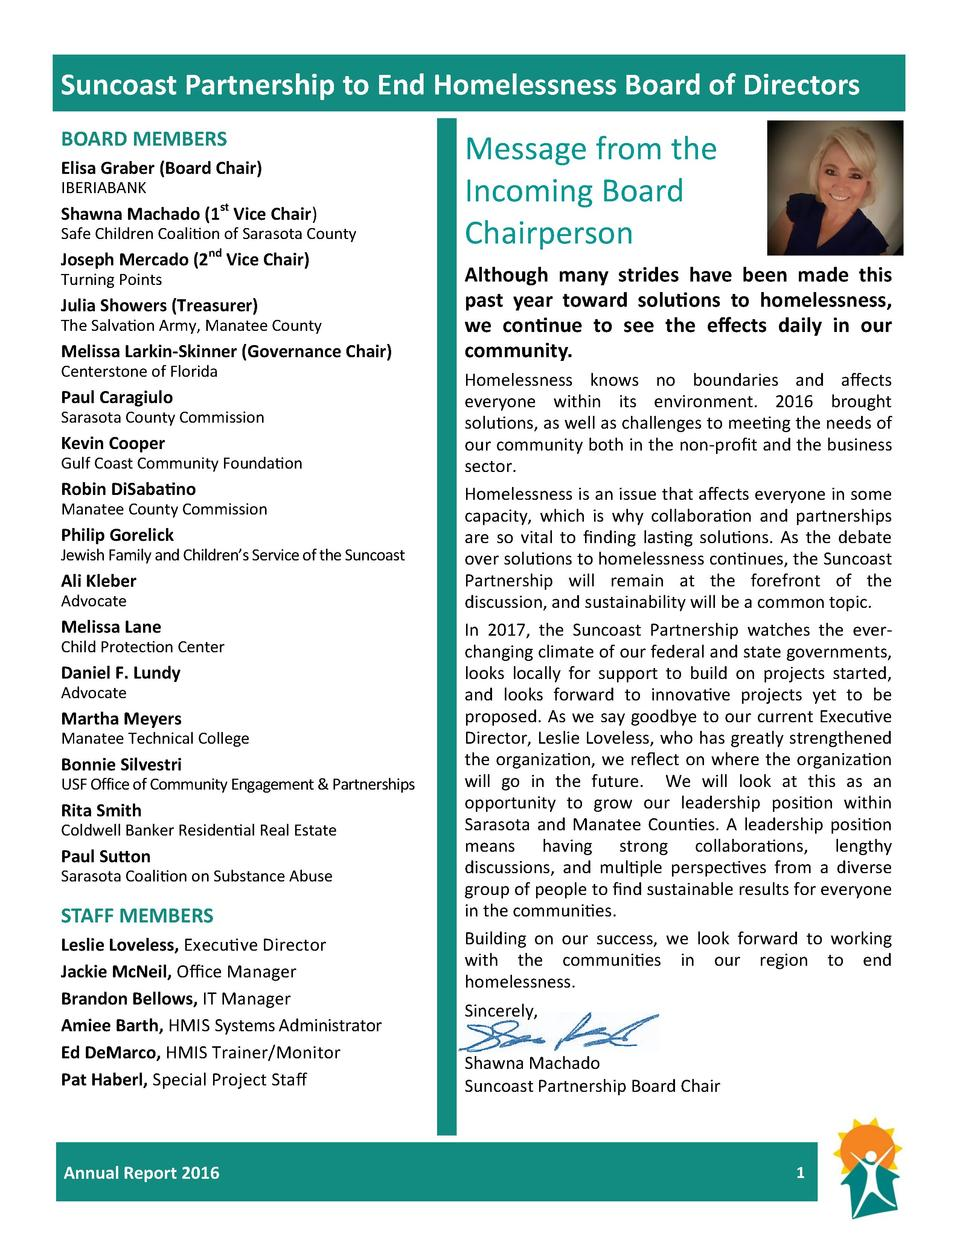 Suncoast Partnership to End Homelessness Board of Directors BOARD MEMBERS Elisa Graber  Board Chair  IBERIABANK  Shawna Ma...